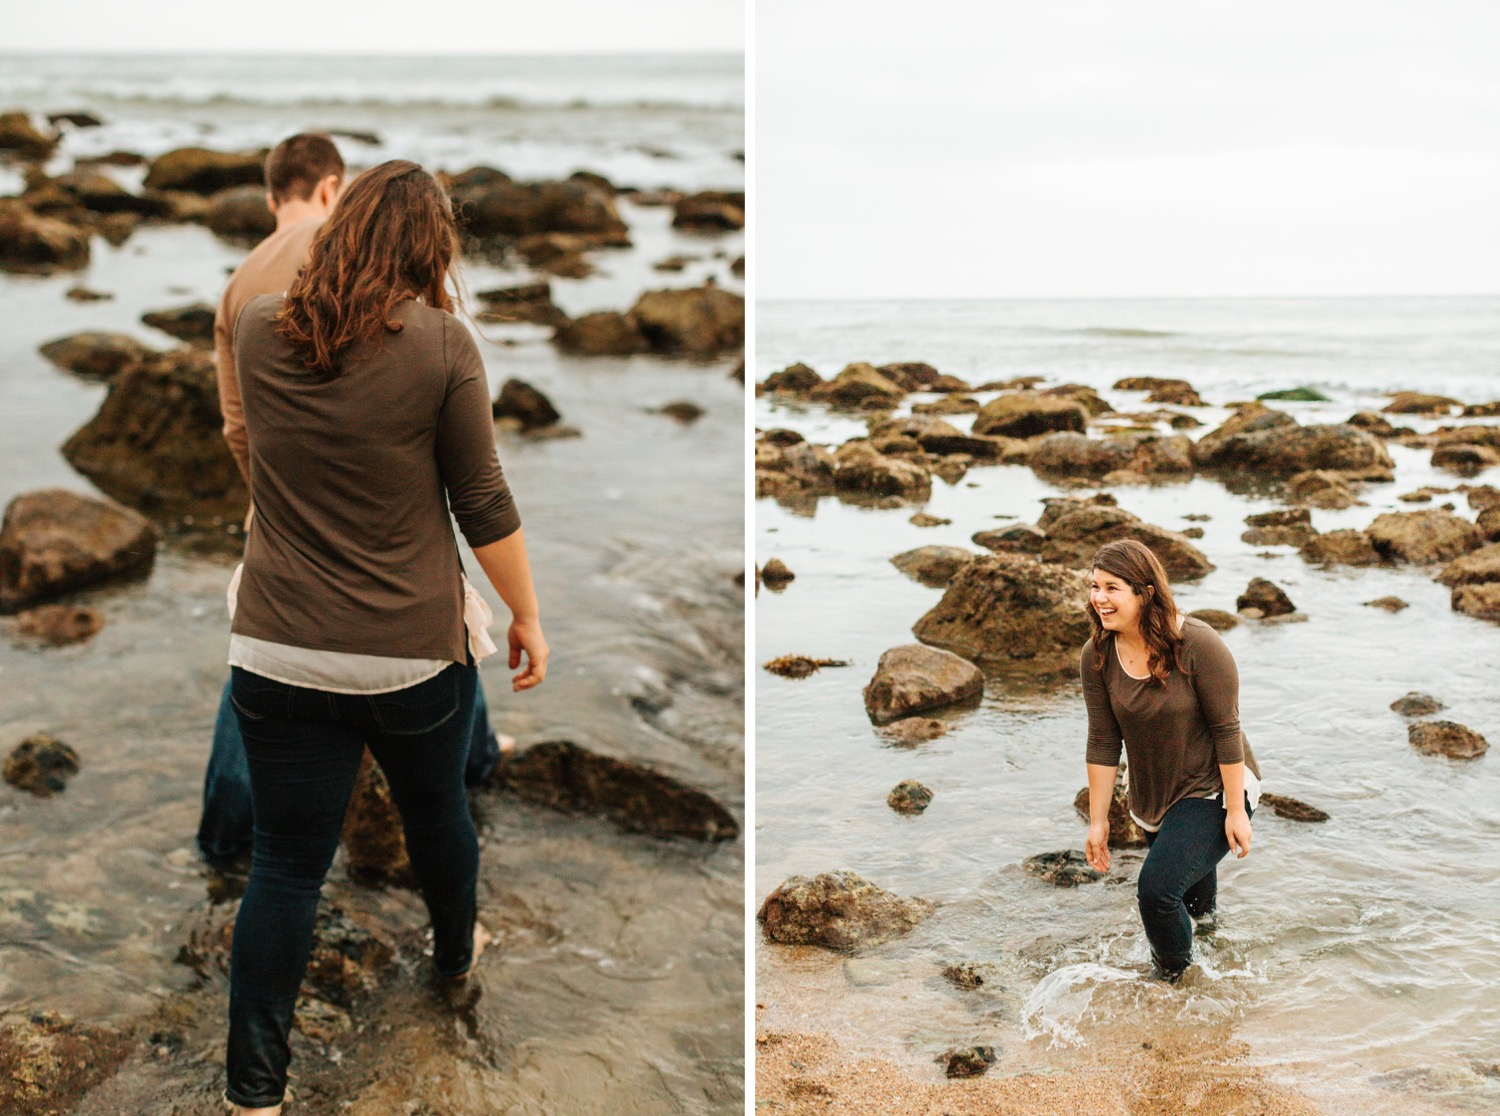 exploring-the-beach-adventure-engagement-session